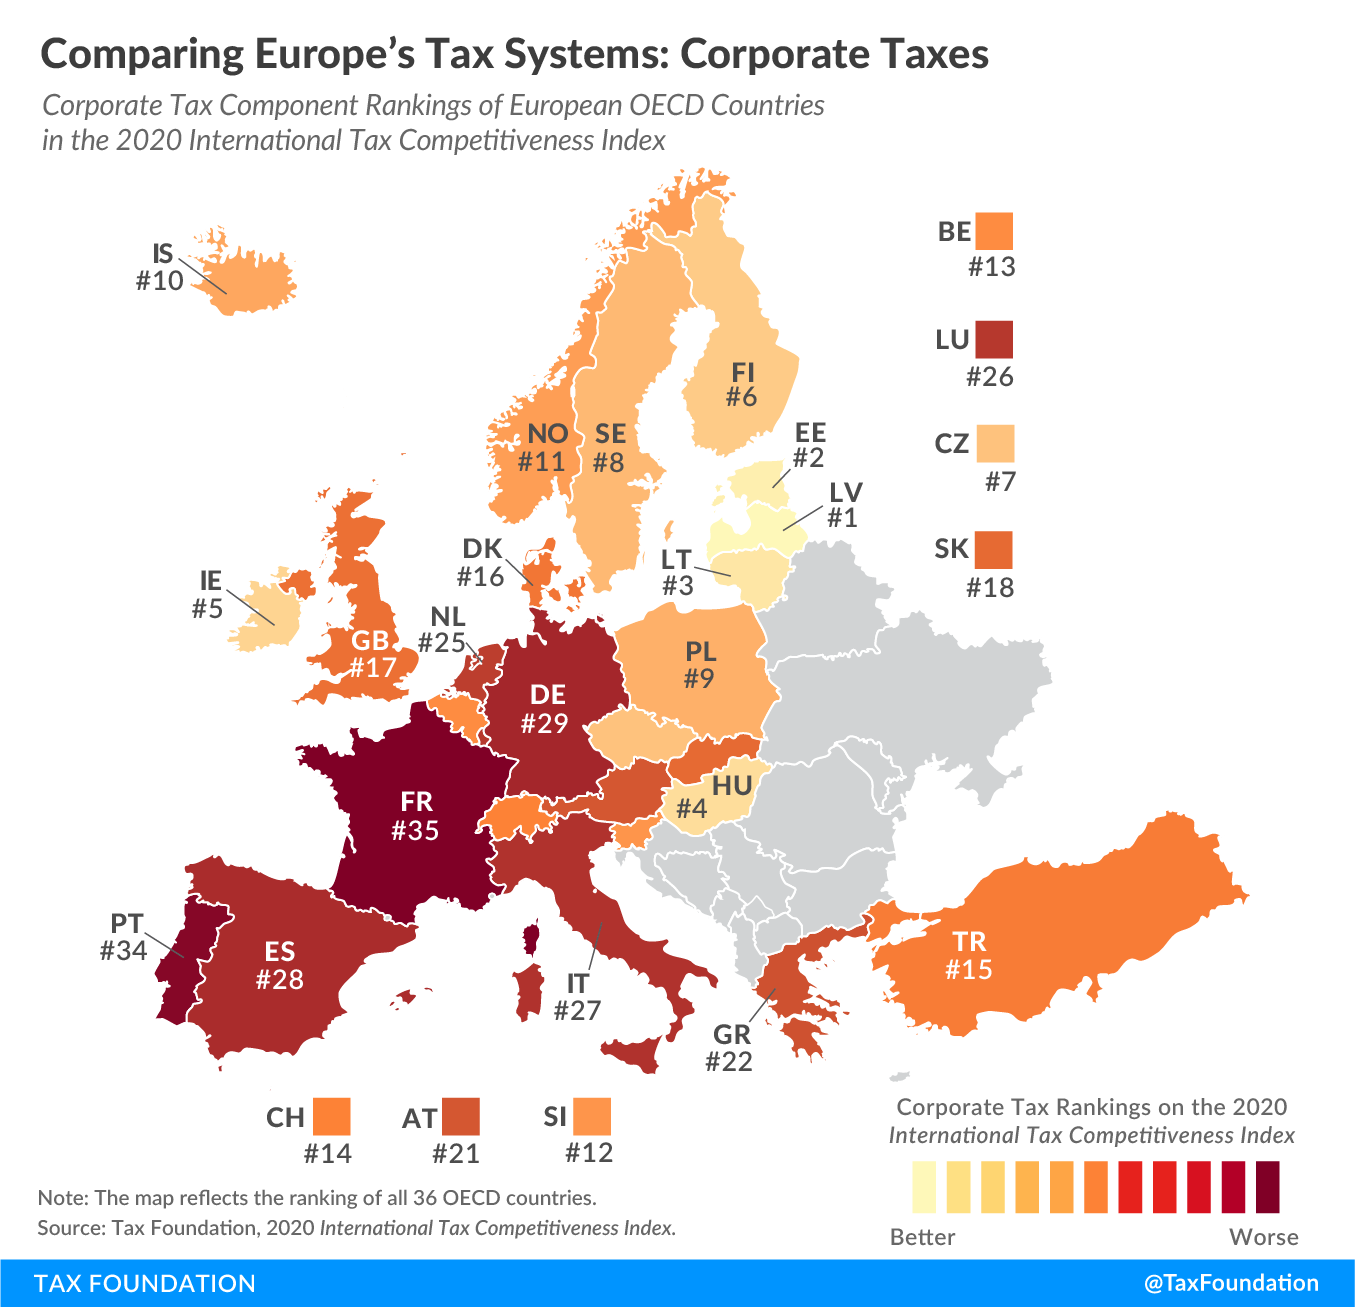 Comparing Europe's Tax Systems: Corporate Taxes, Best and Worst Corporate Tax Systems in Europe 2020